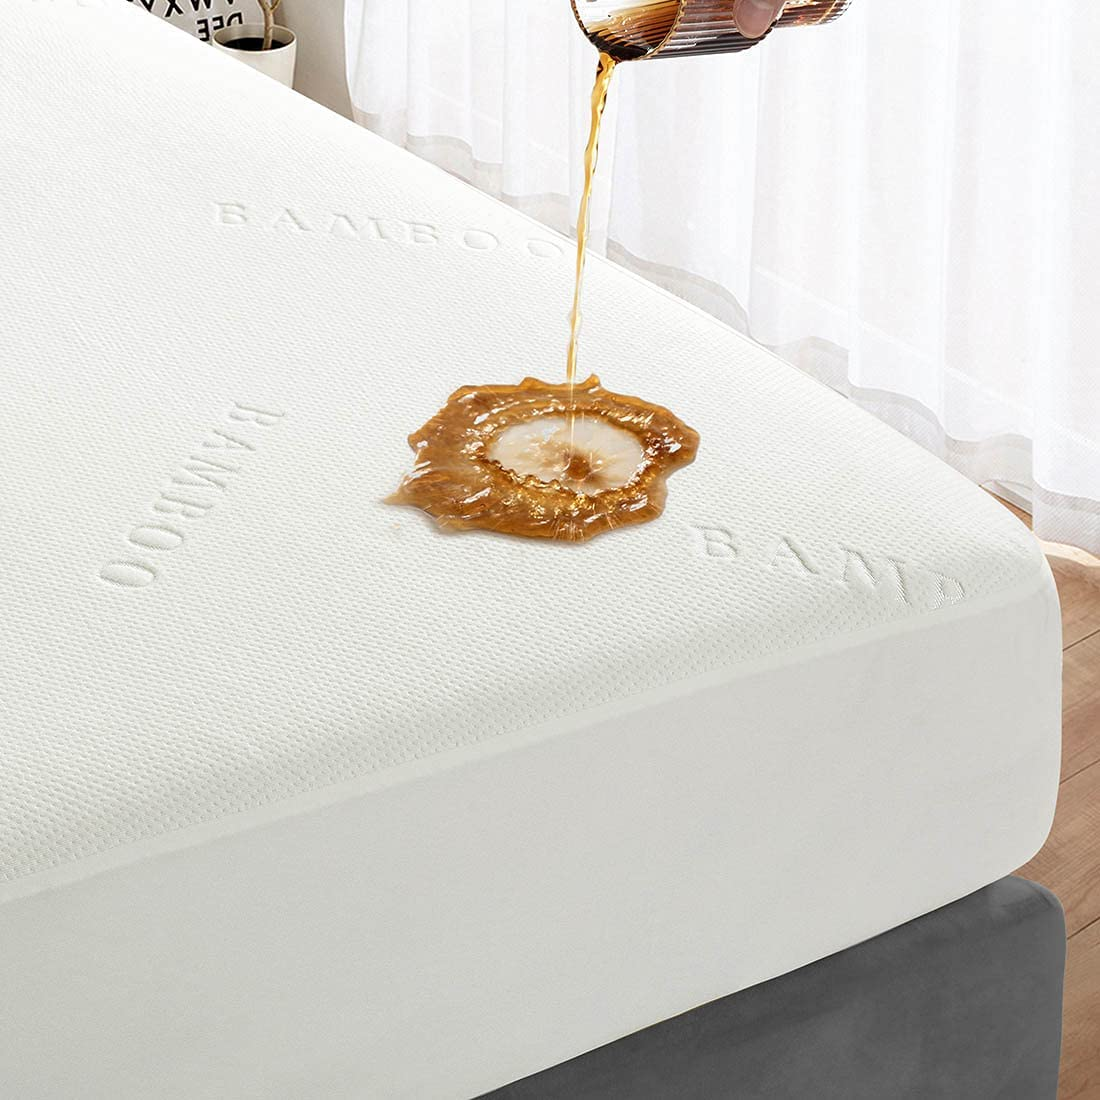 YINSTAR Mattress Boston Mall Protector Queen Beauty products P Size 100% Waterproof